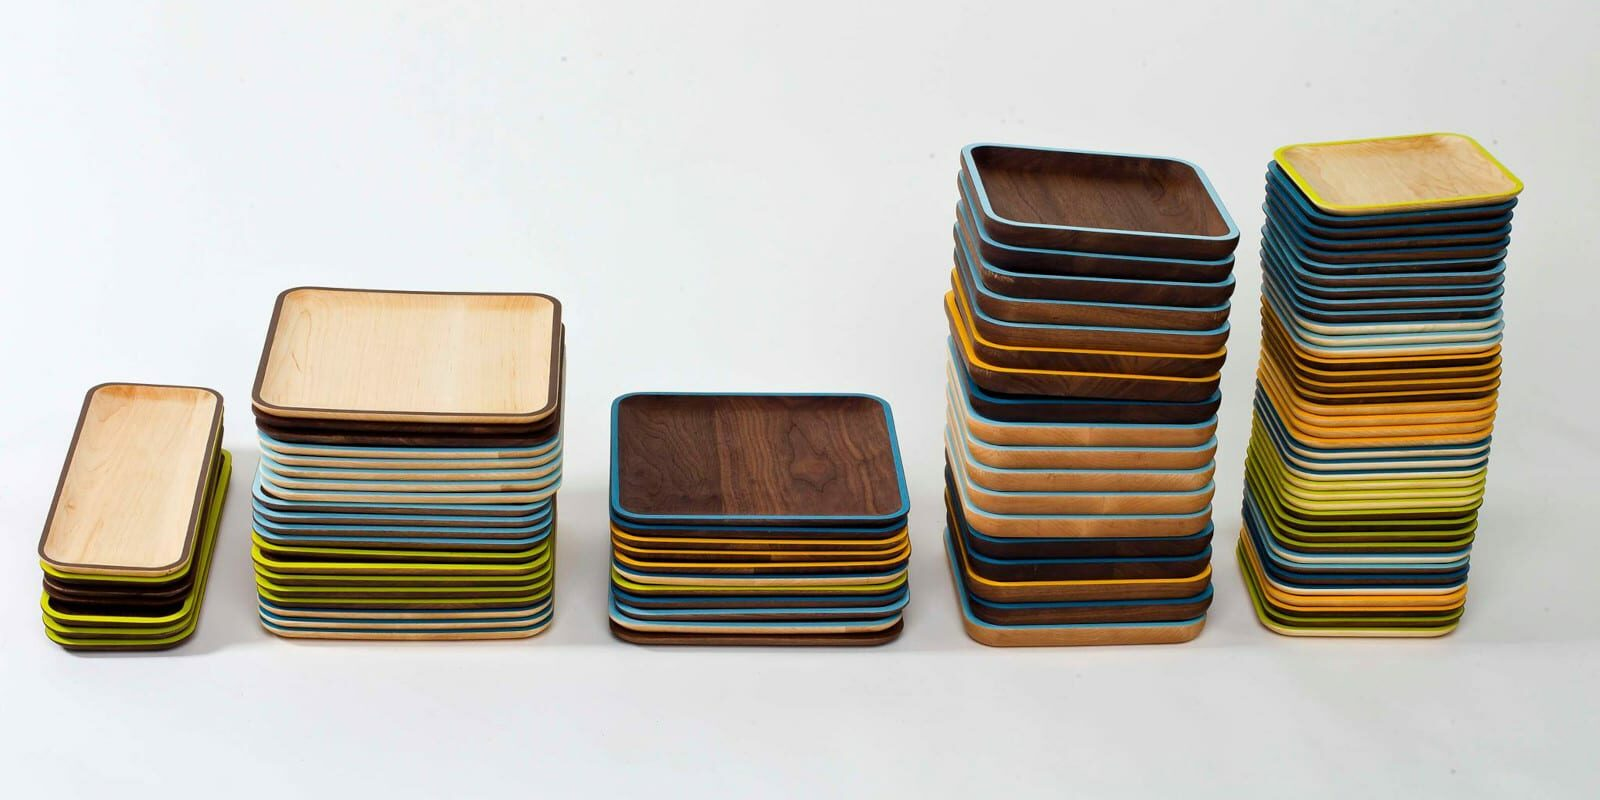 Image of wooden plates made by David Rasmussen